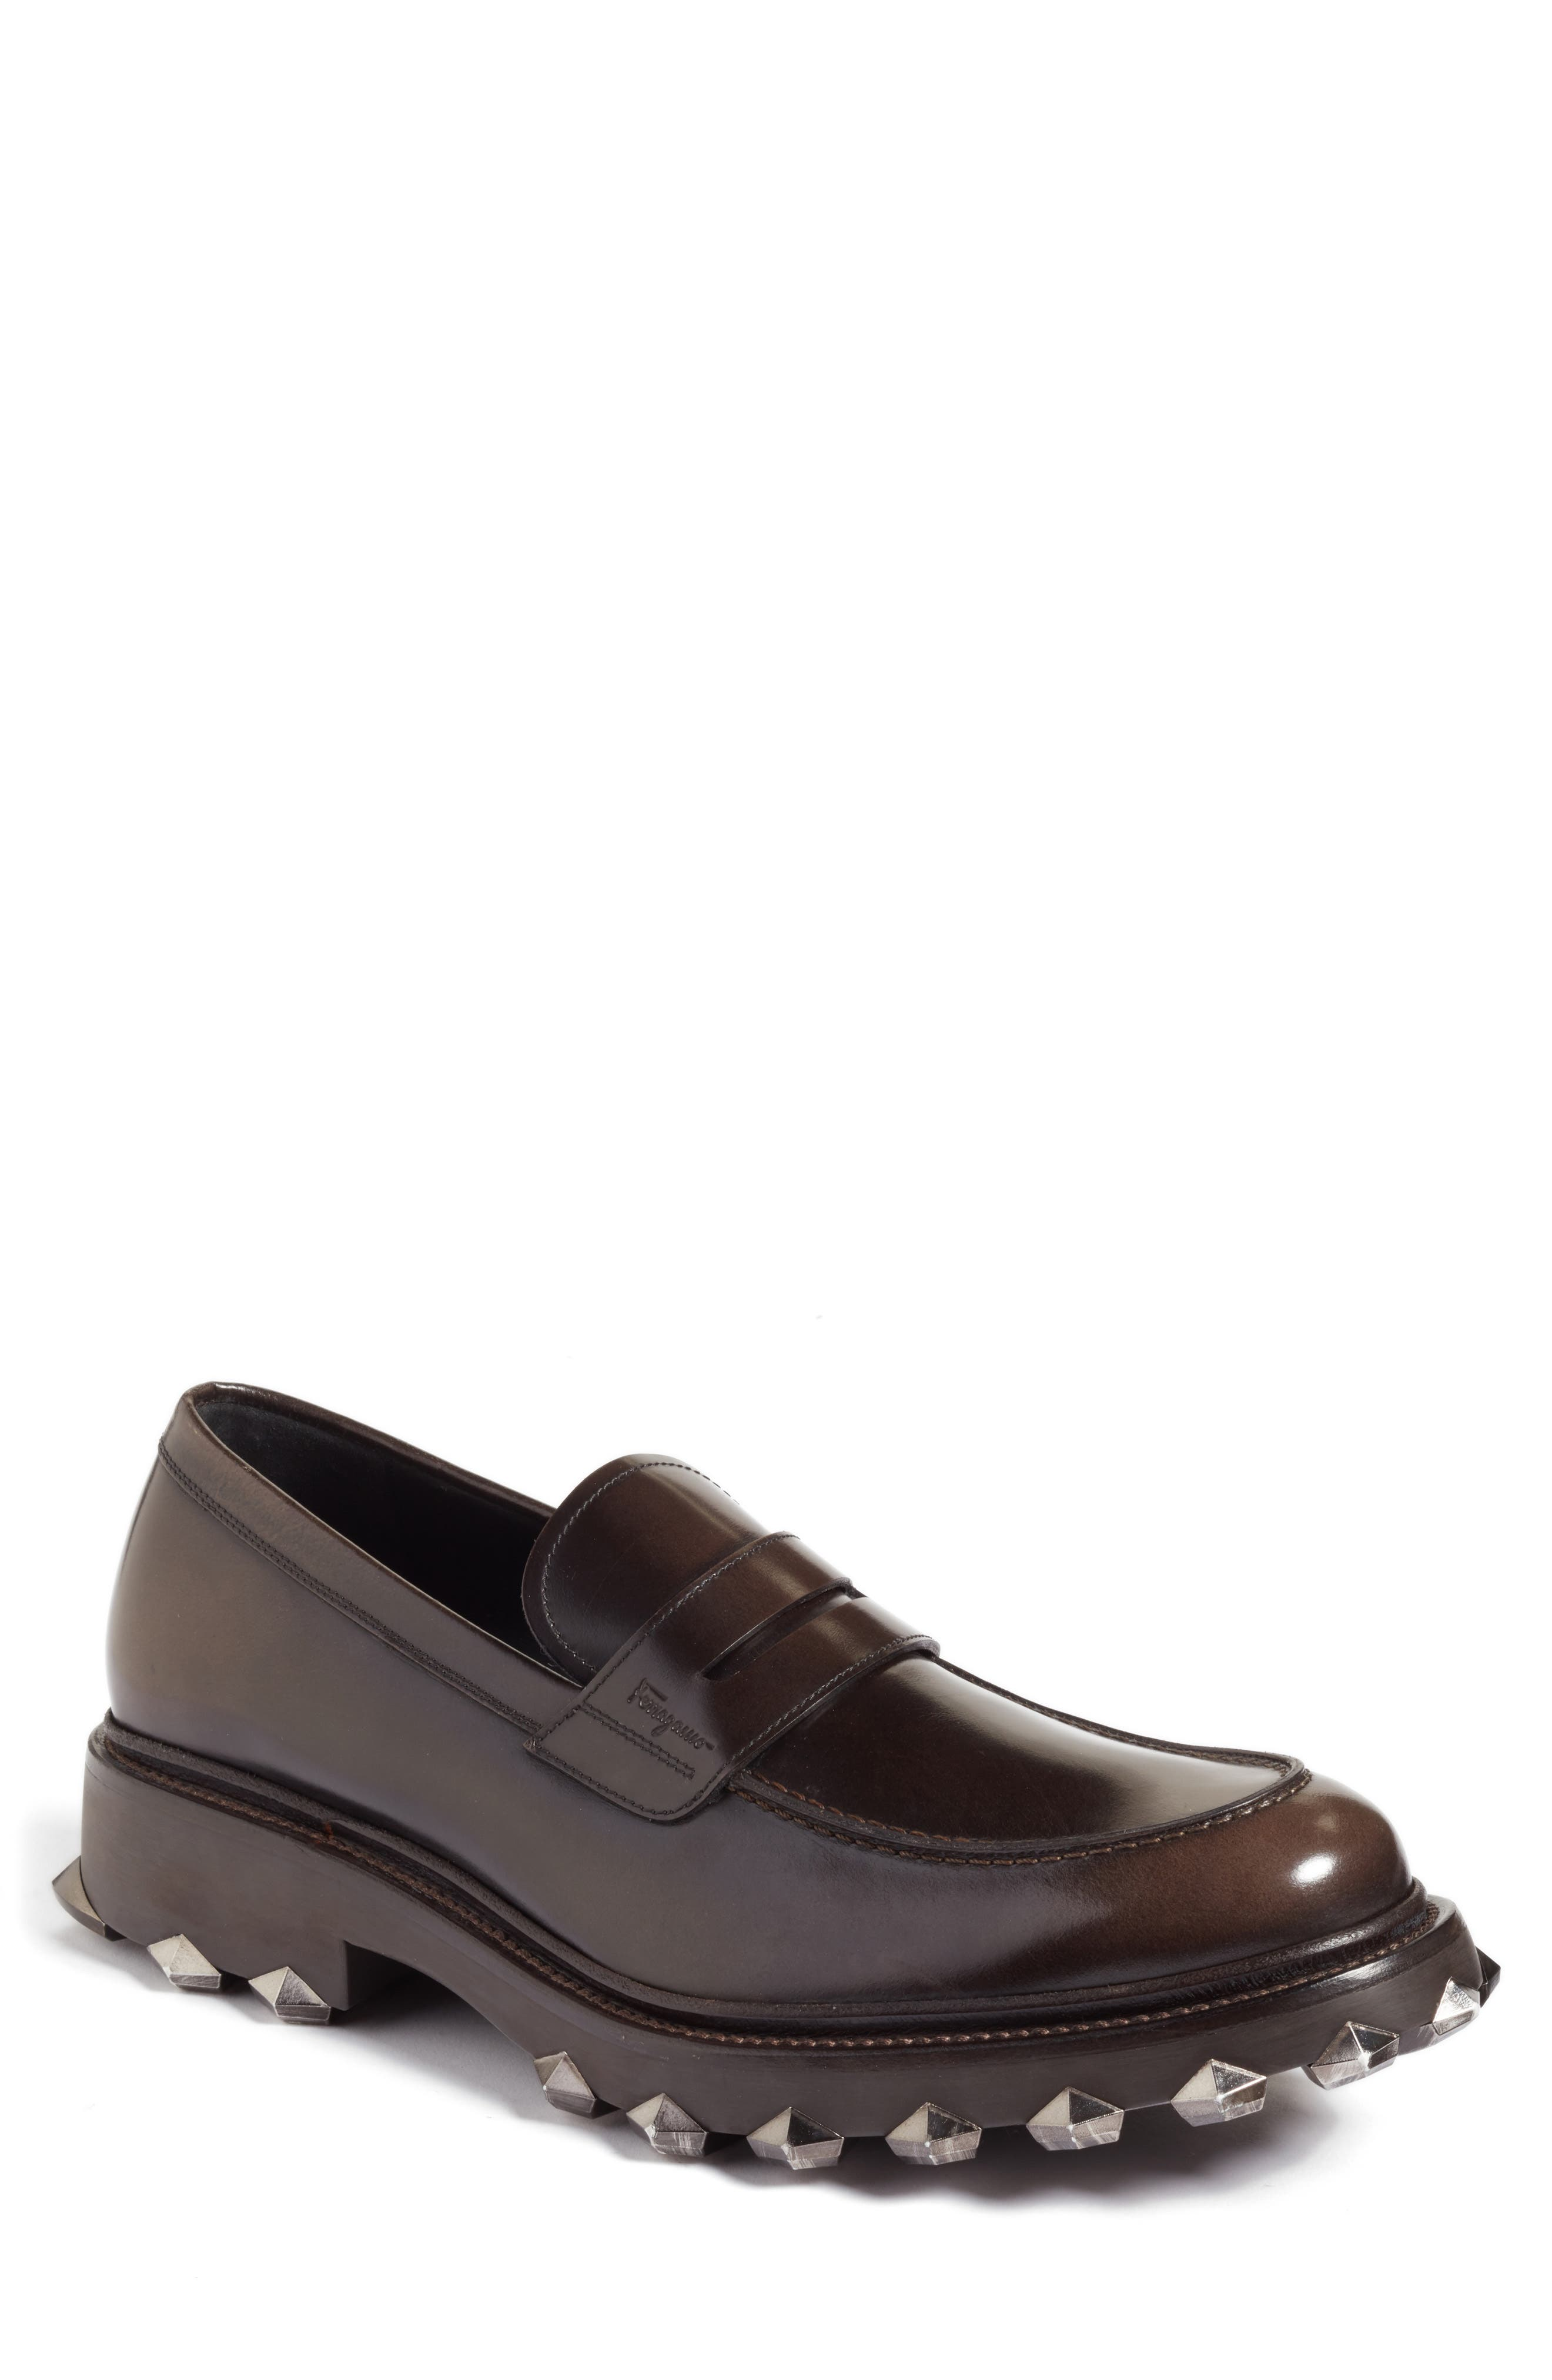 Penny Loafer,                         Main,                         color, 024